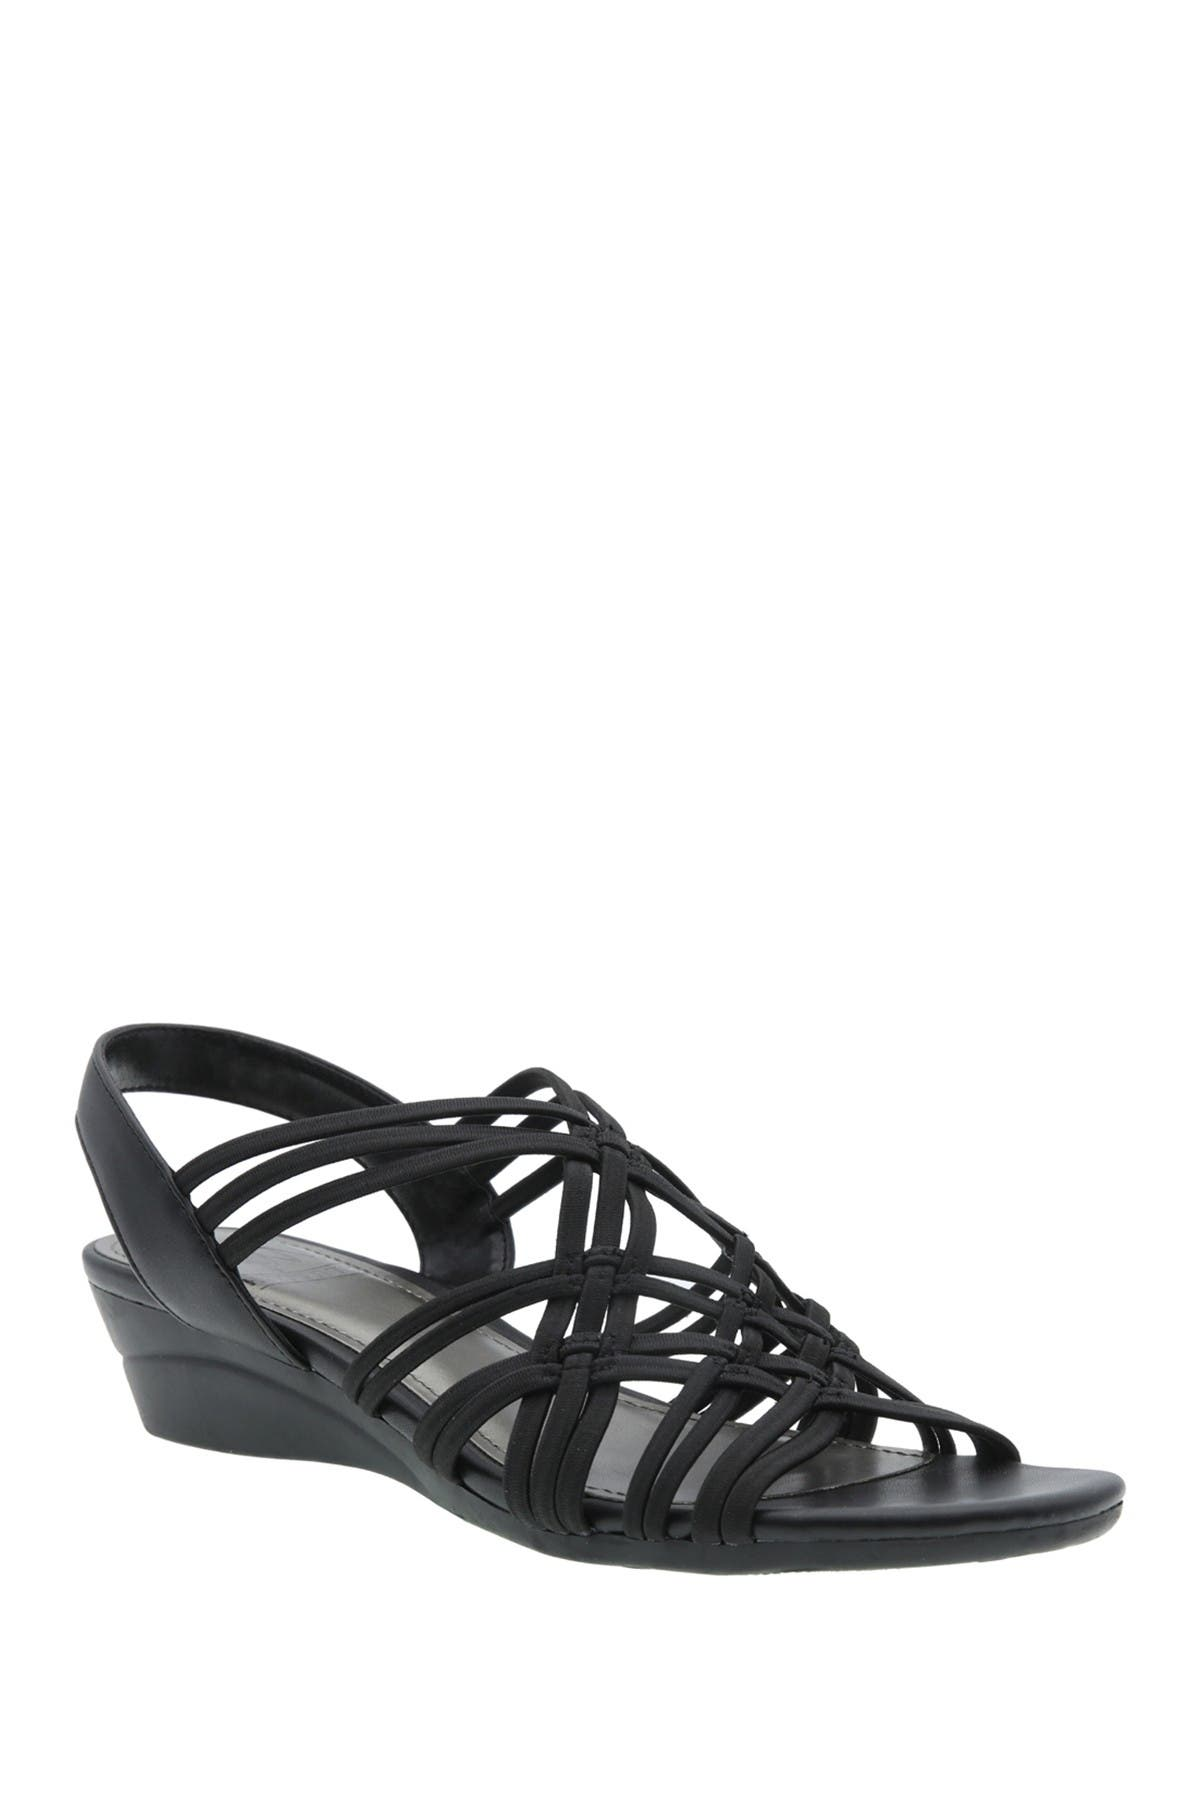 Image of Impo Rainelle Stretch Wedge Sandal - Wide Width Available